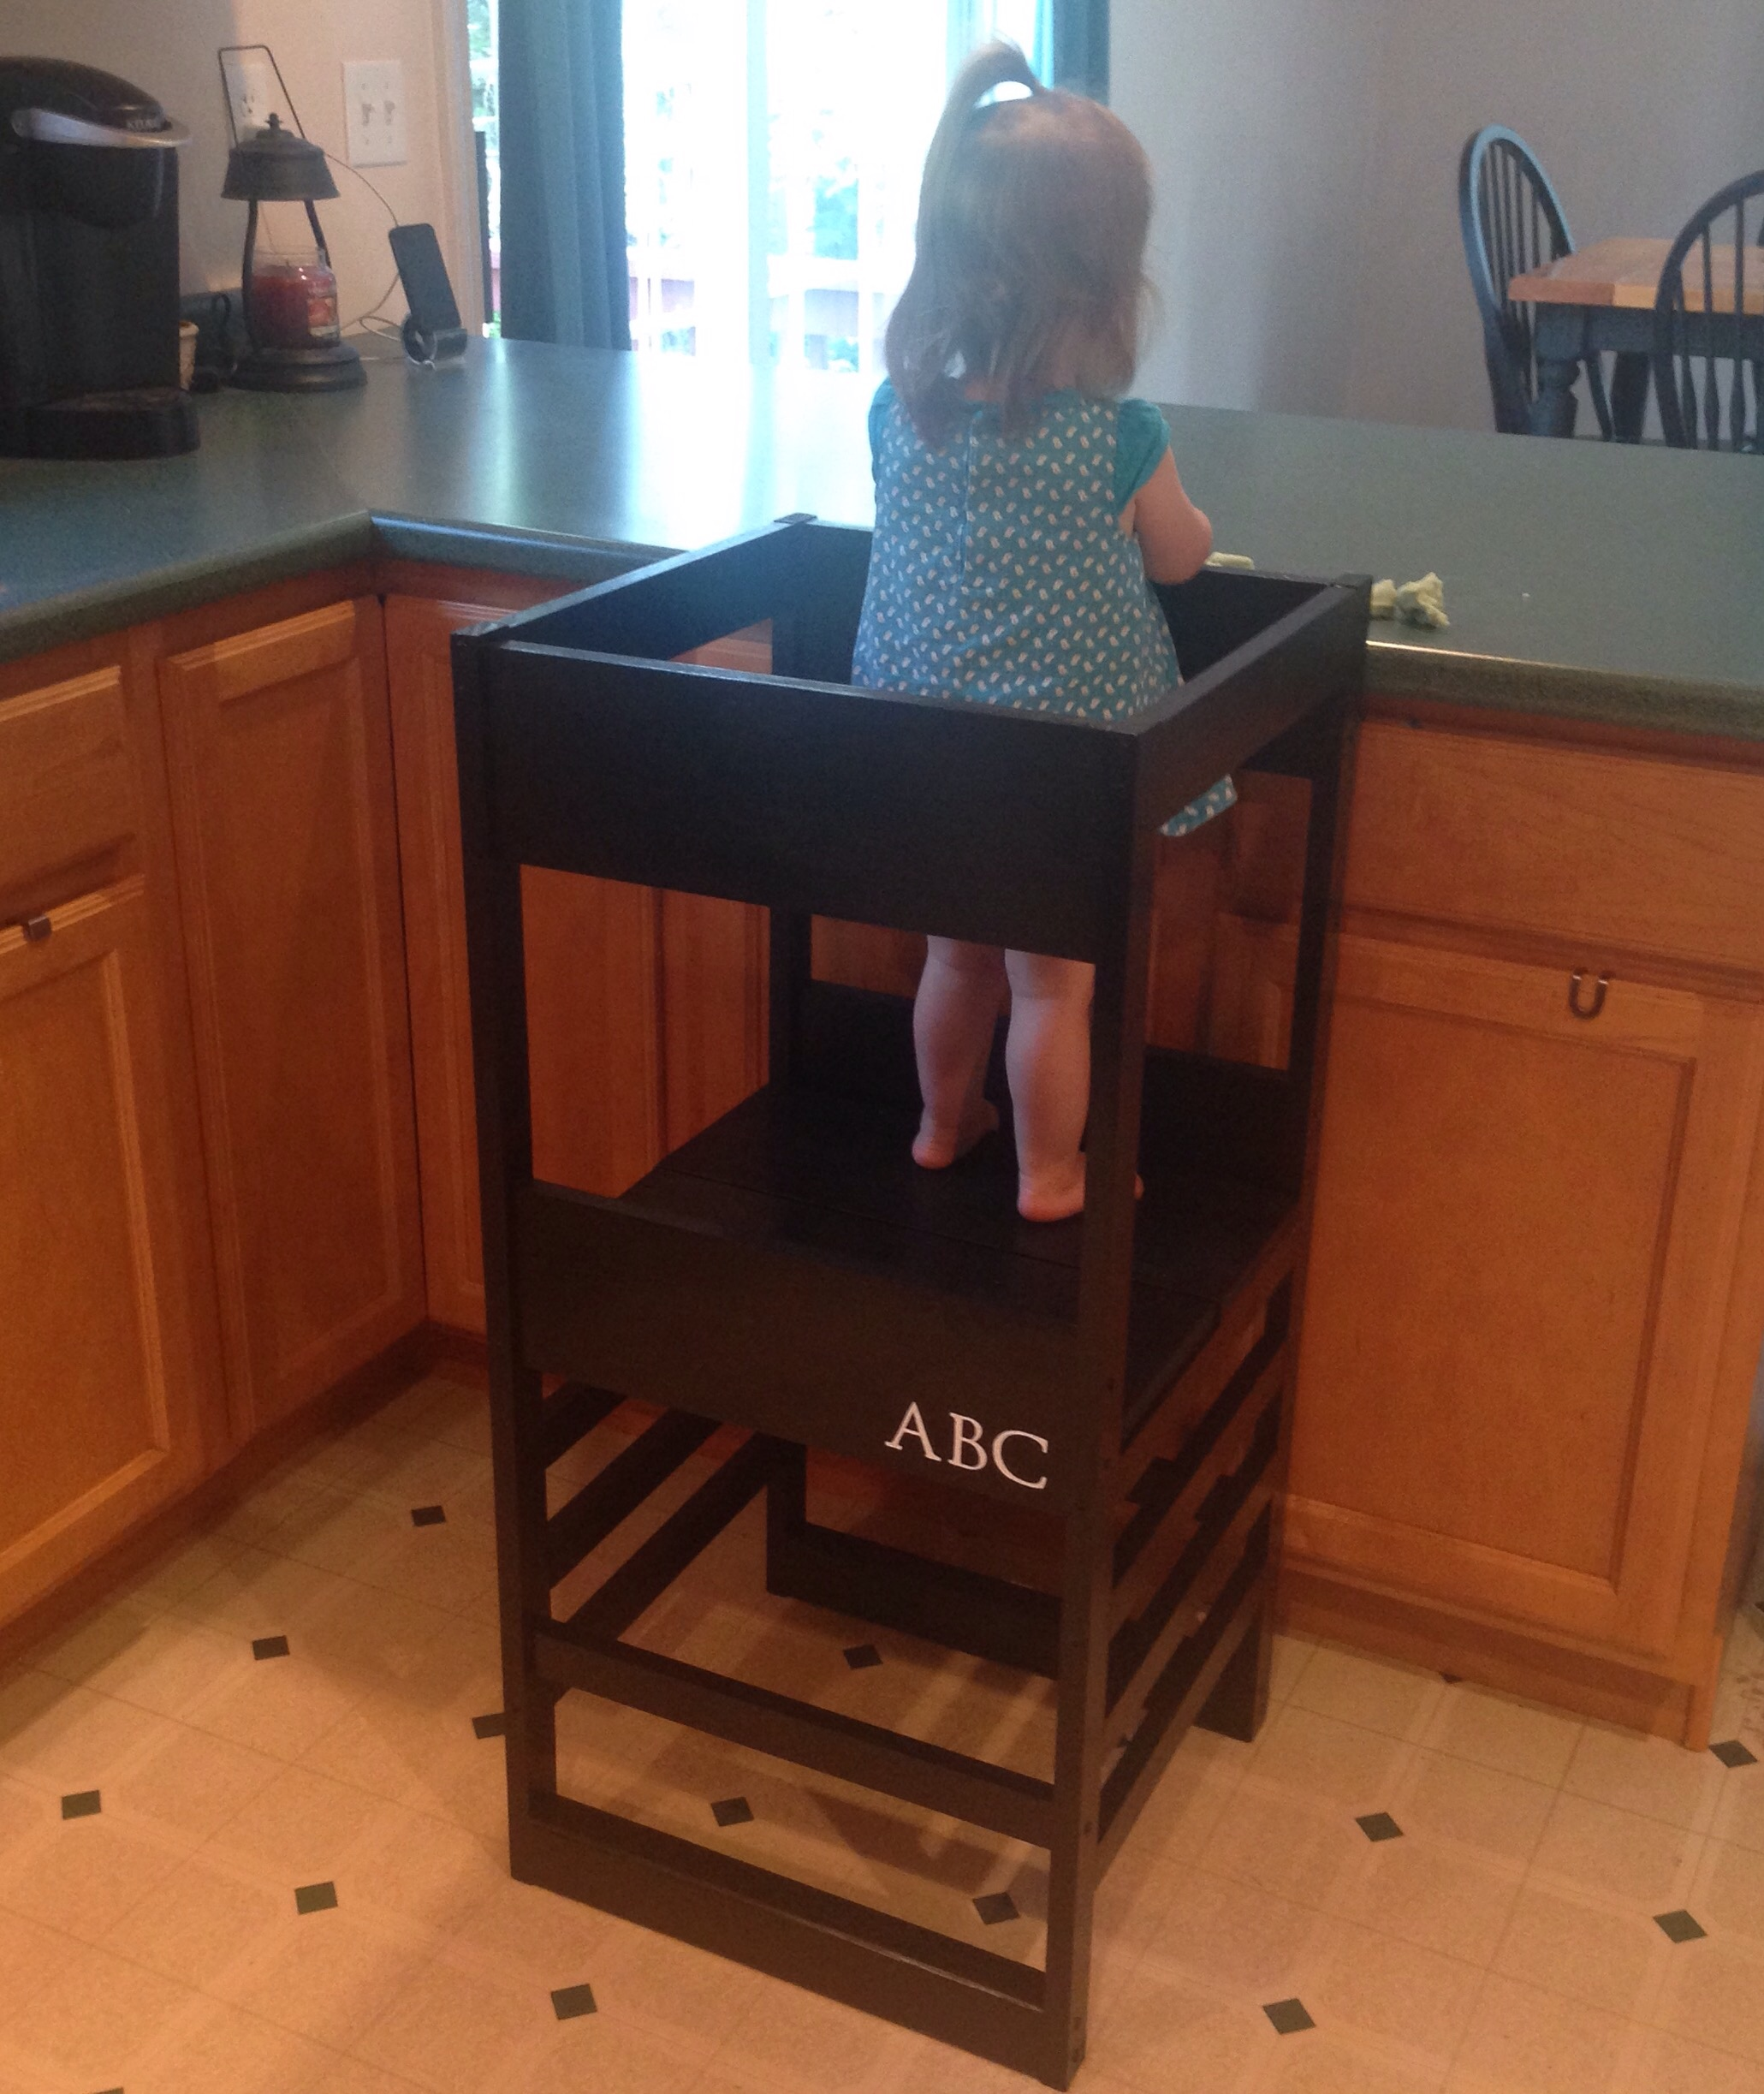 Using the Learning Tower / Kitchen Helper